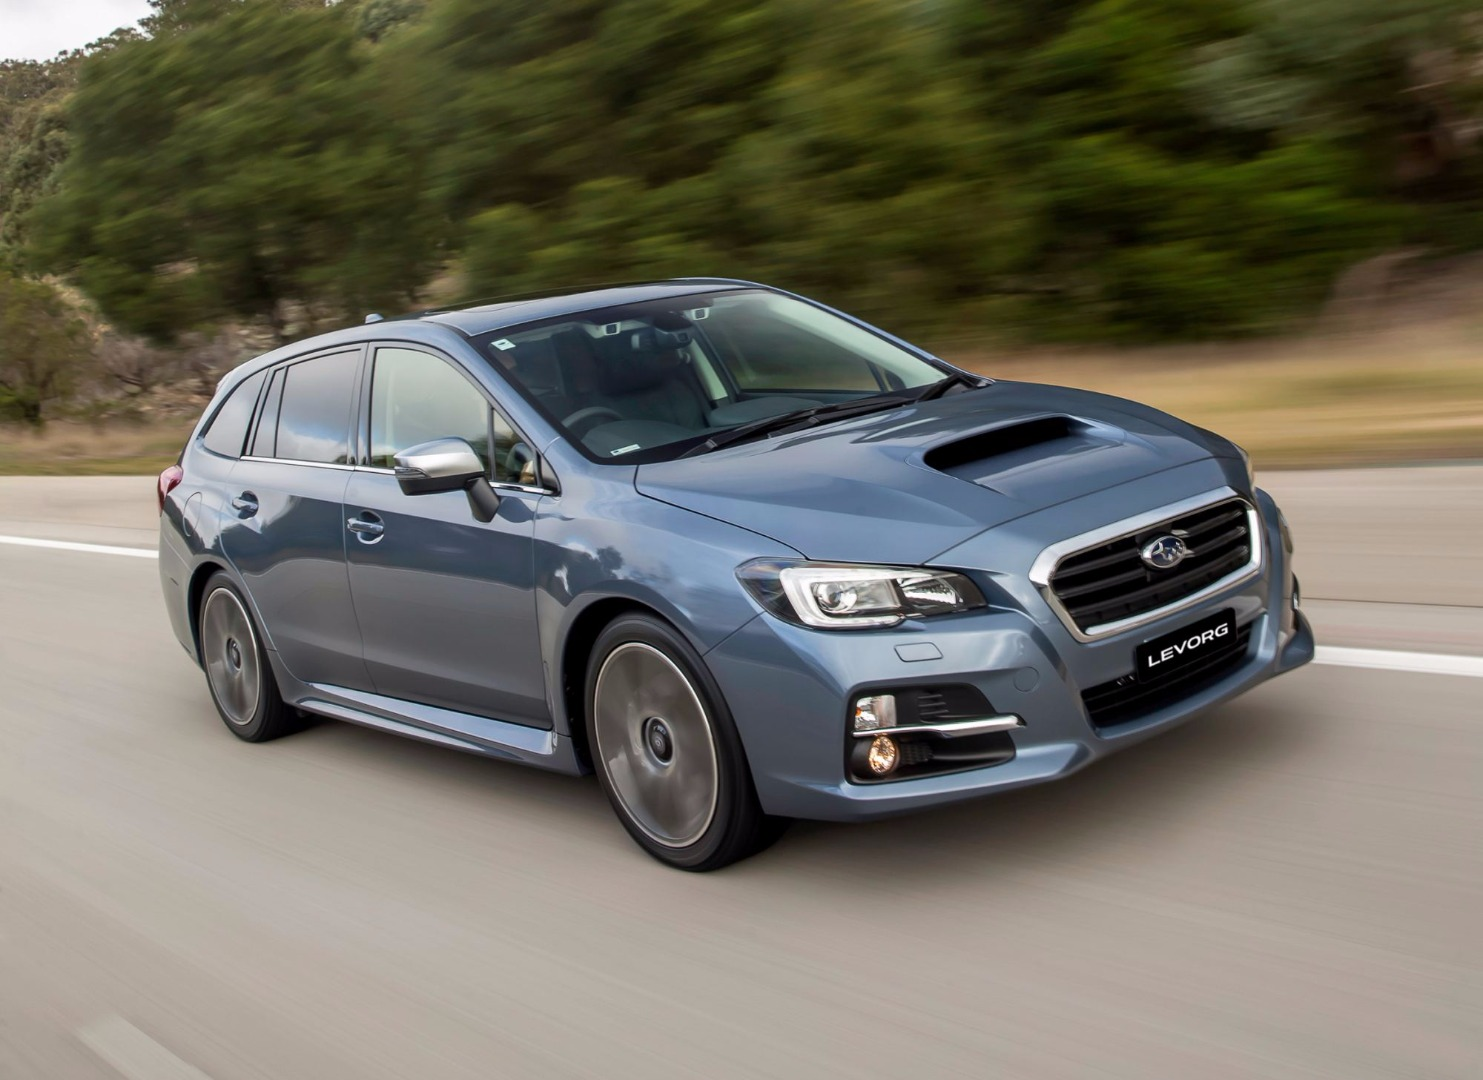 Review - 2017 Subaru Levorg - Review